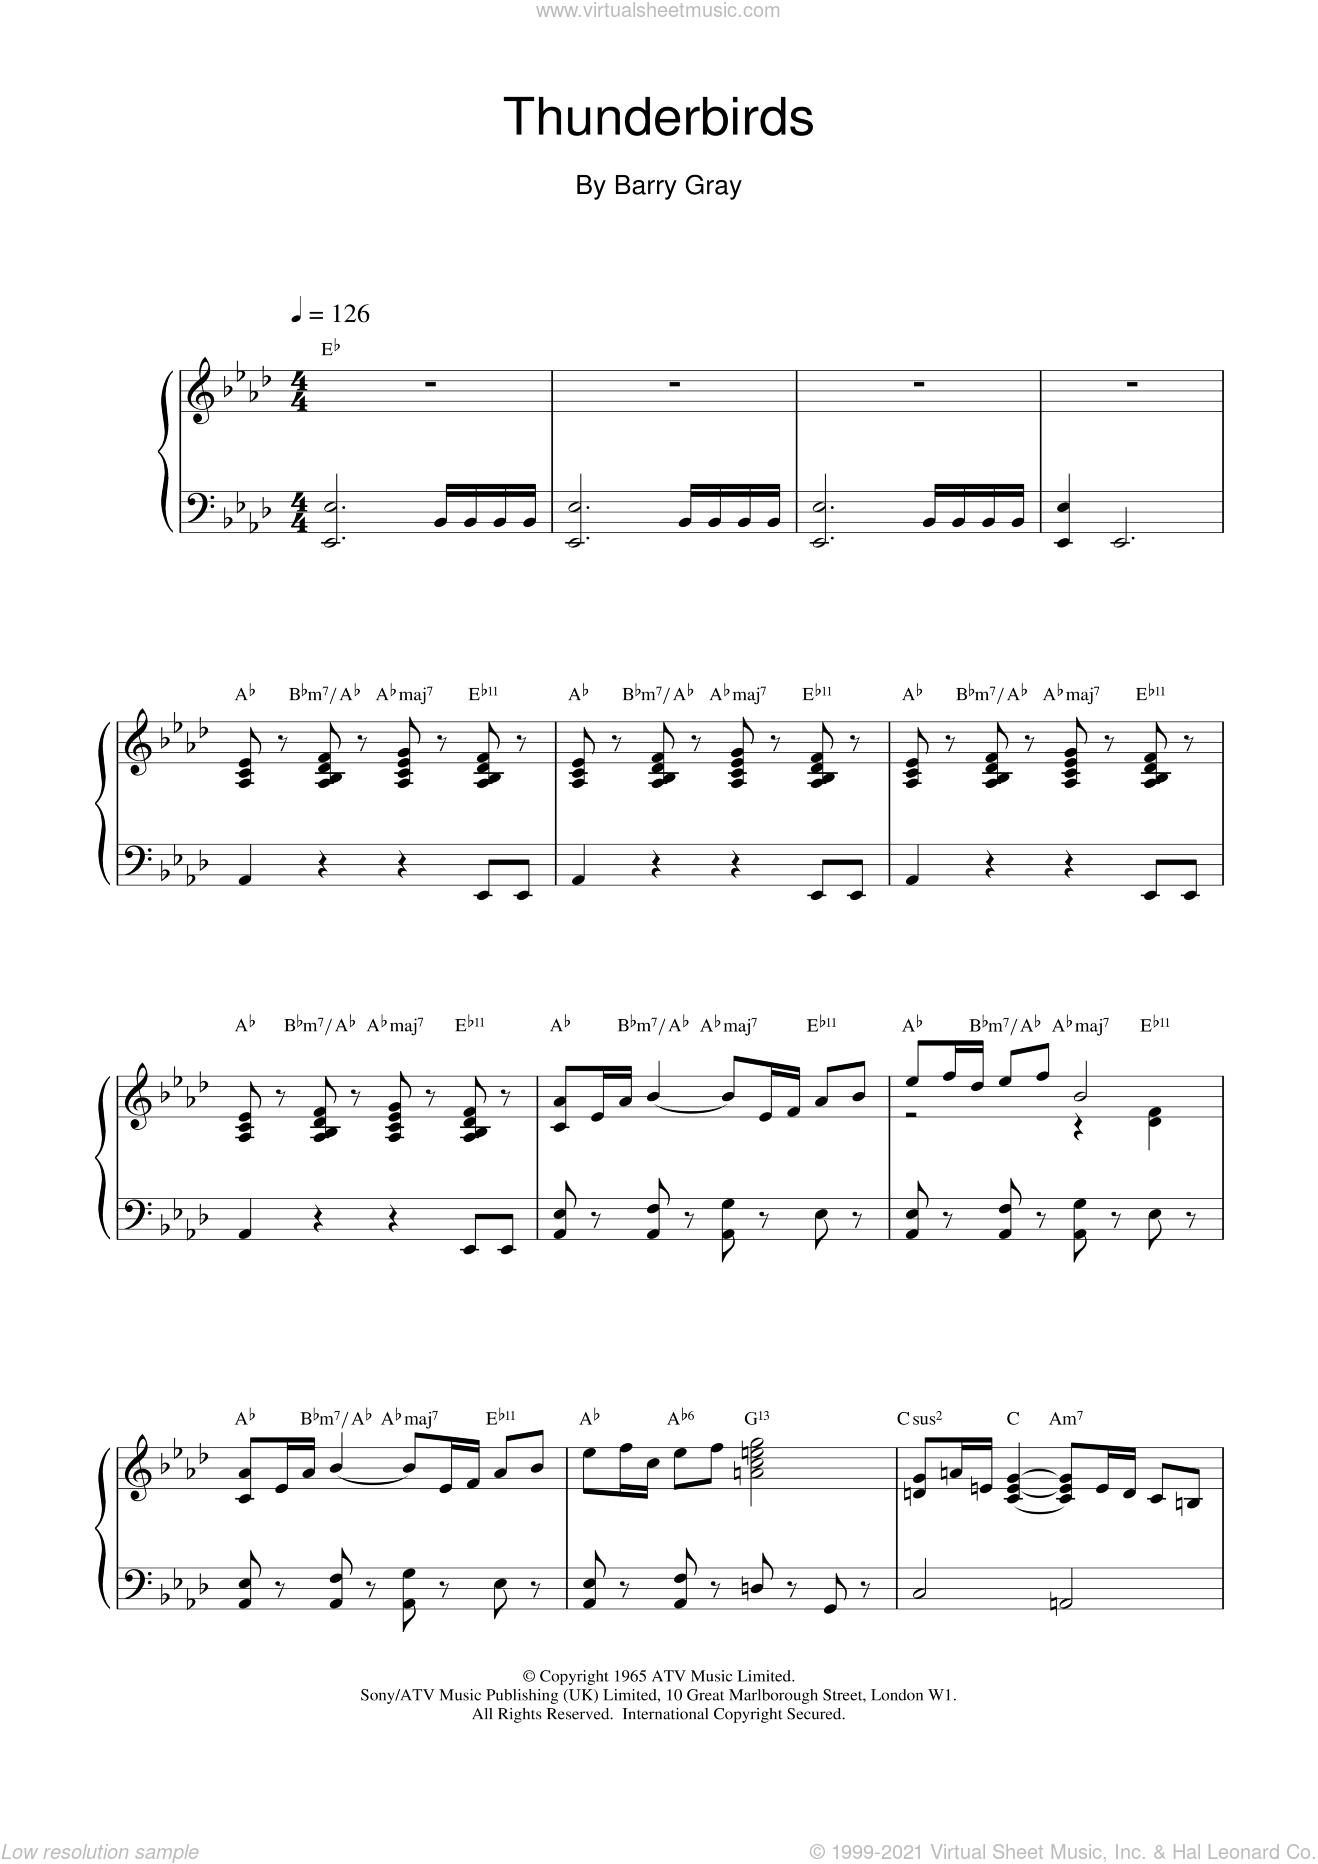 Thunderbirds sheet music for piano solo by Barry Gray